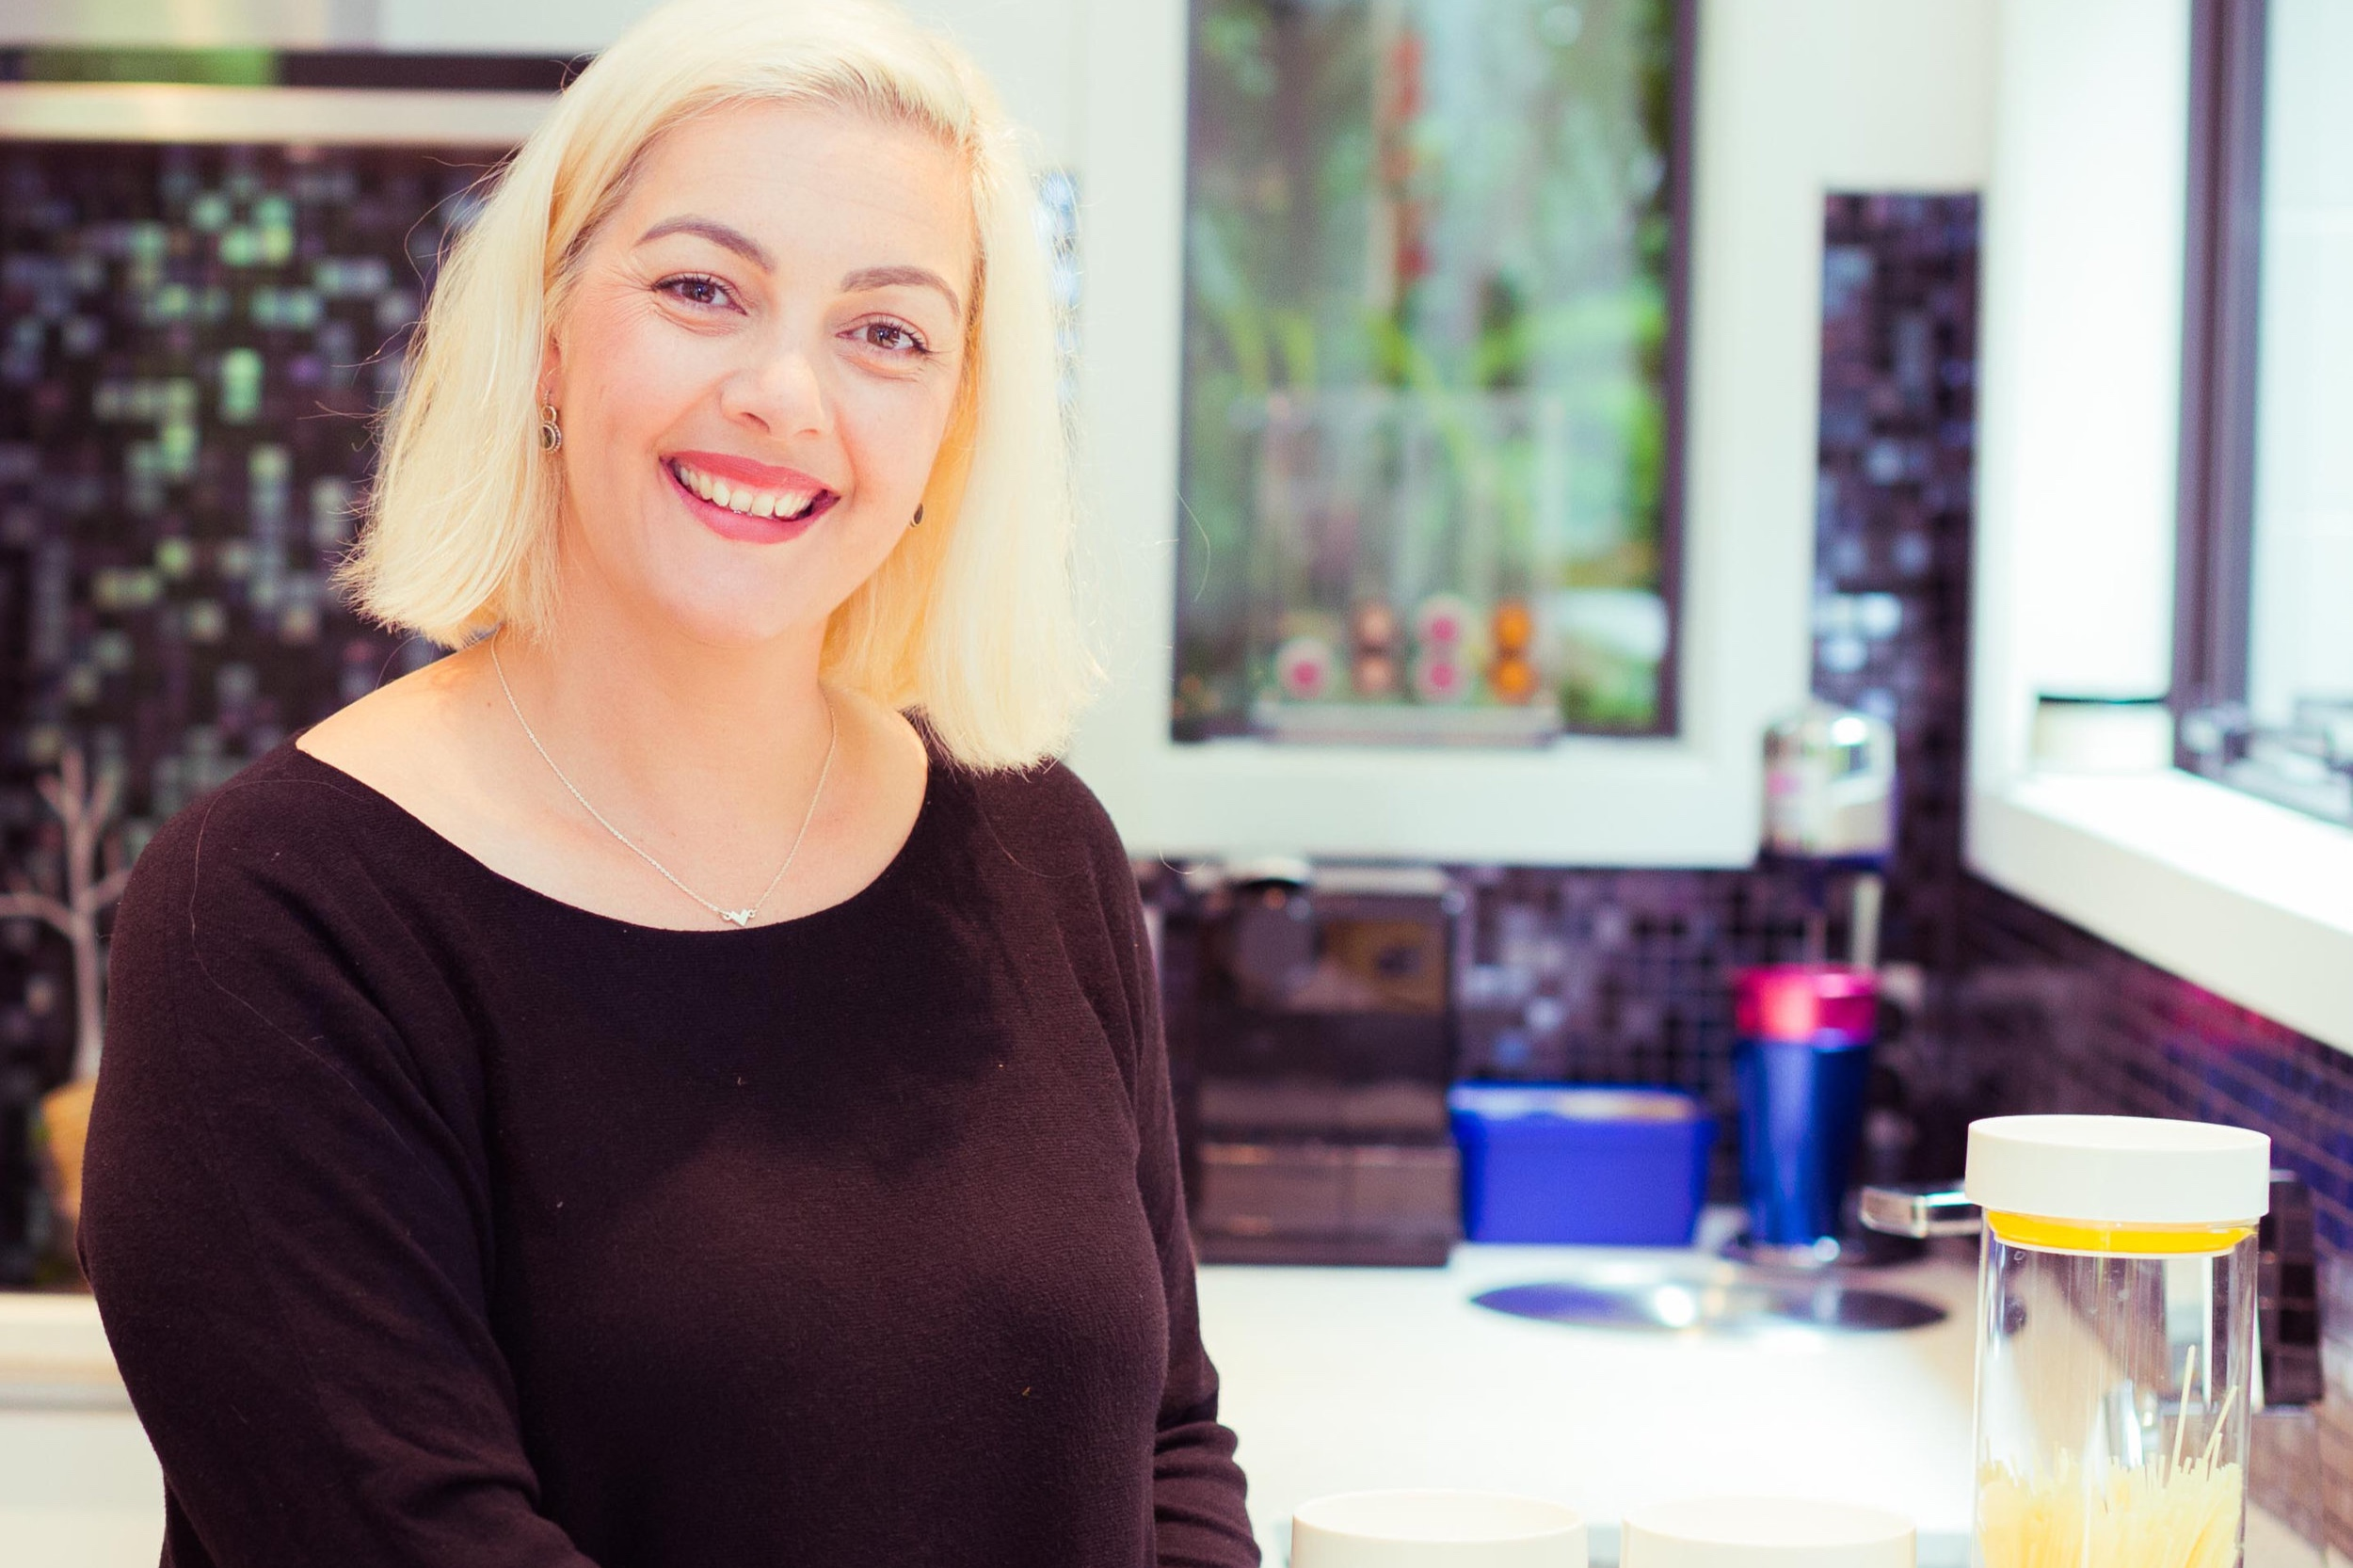 Are you disorganised and stressed out by all the stuff in your home? - Welcome to the revolution of guided decluttering with professional organiser Rebekah Holmes.